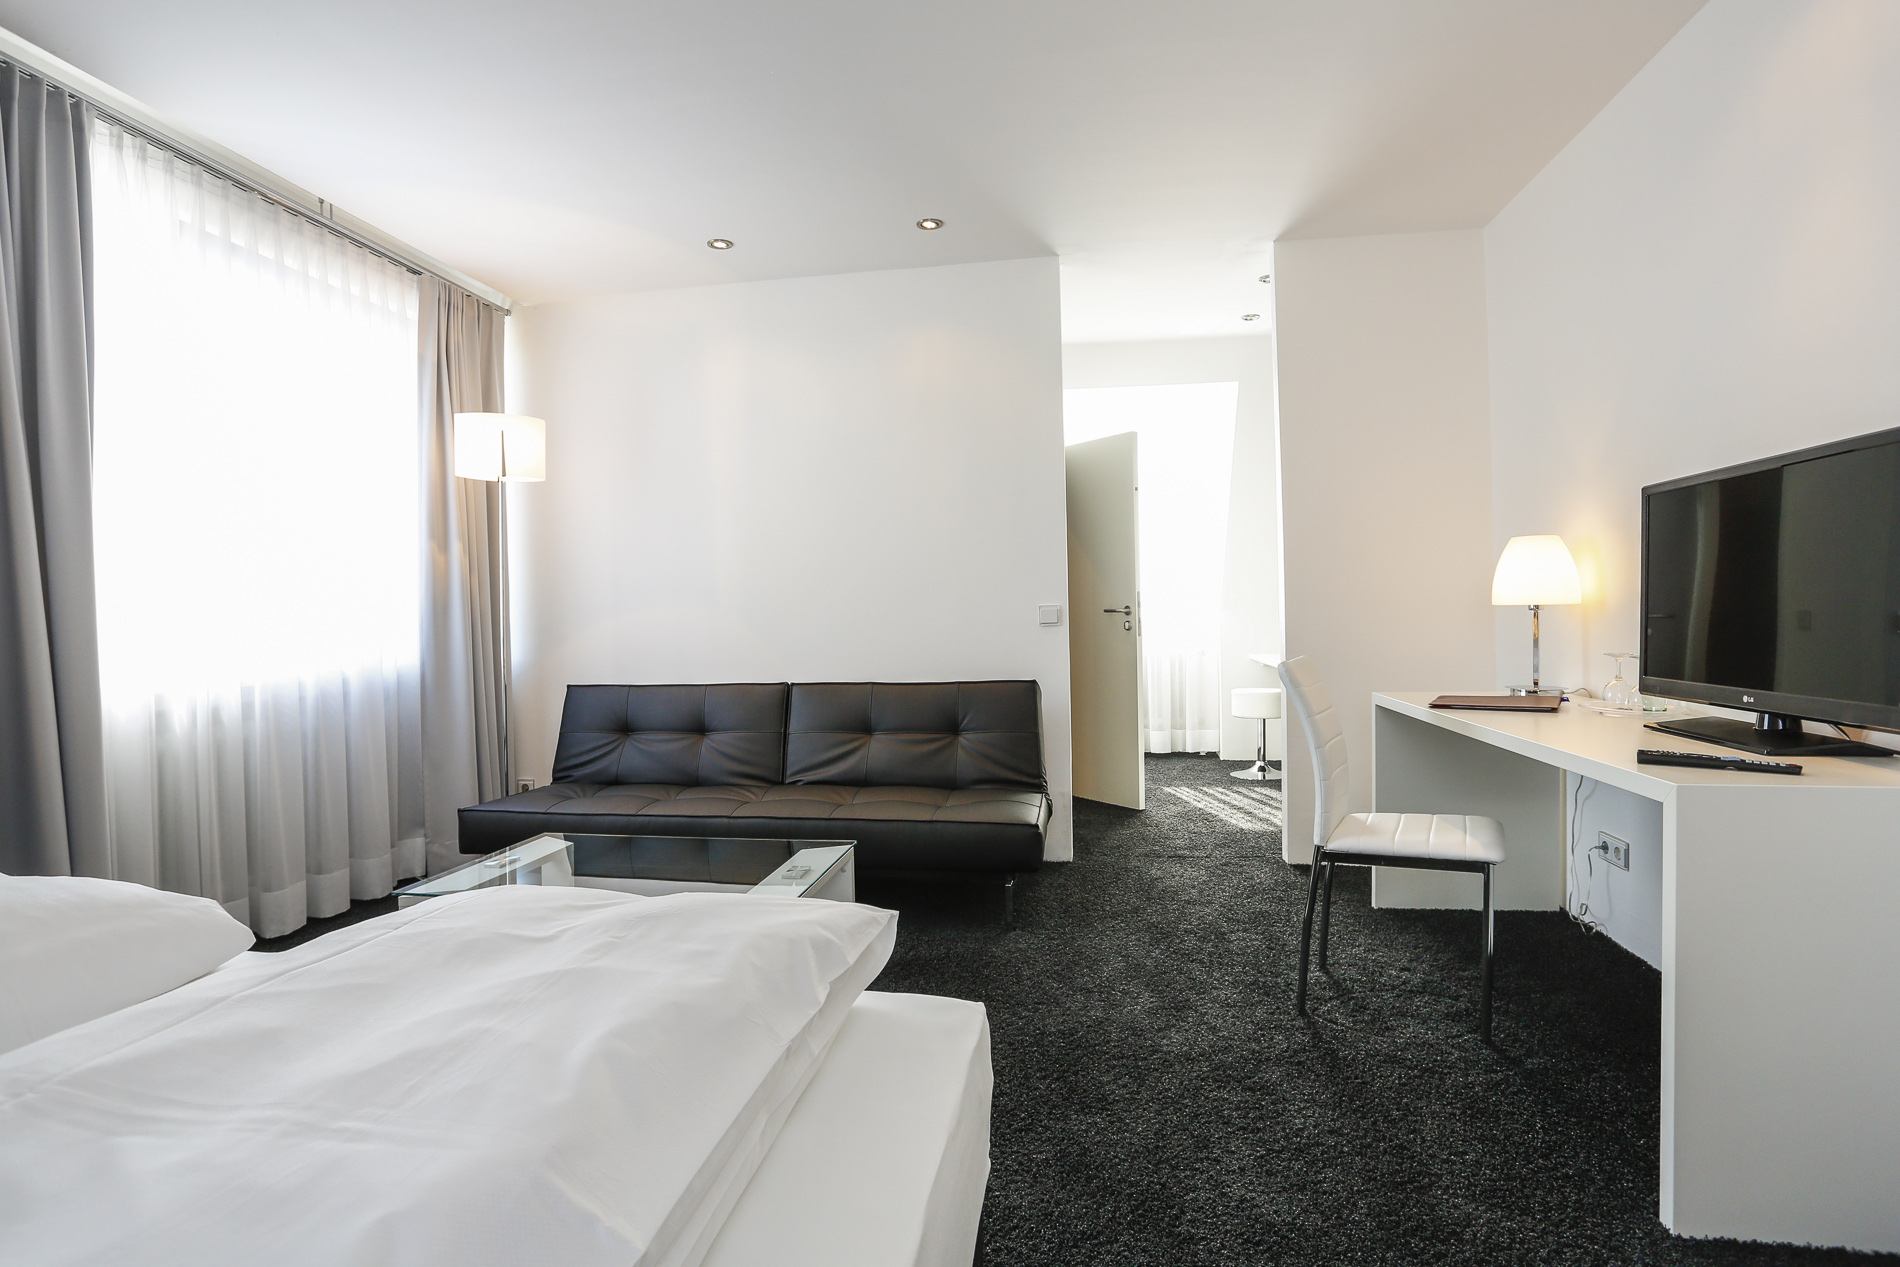 zimmer hotel augsburg businesshotel tagungshotel schempp bobingen. Black Bedroom Furniture Sets. Home Design Ideas